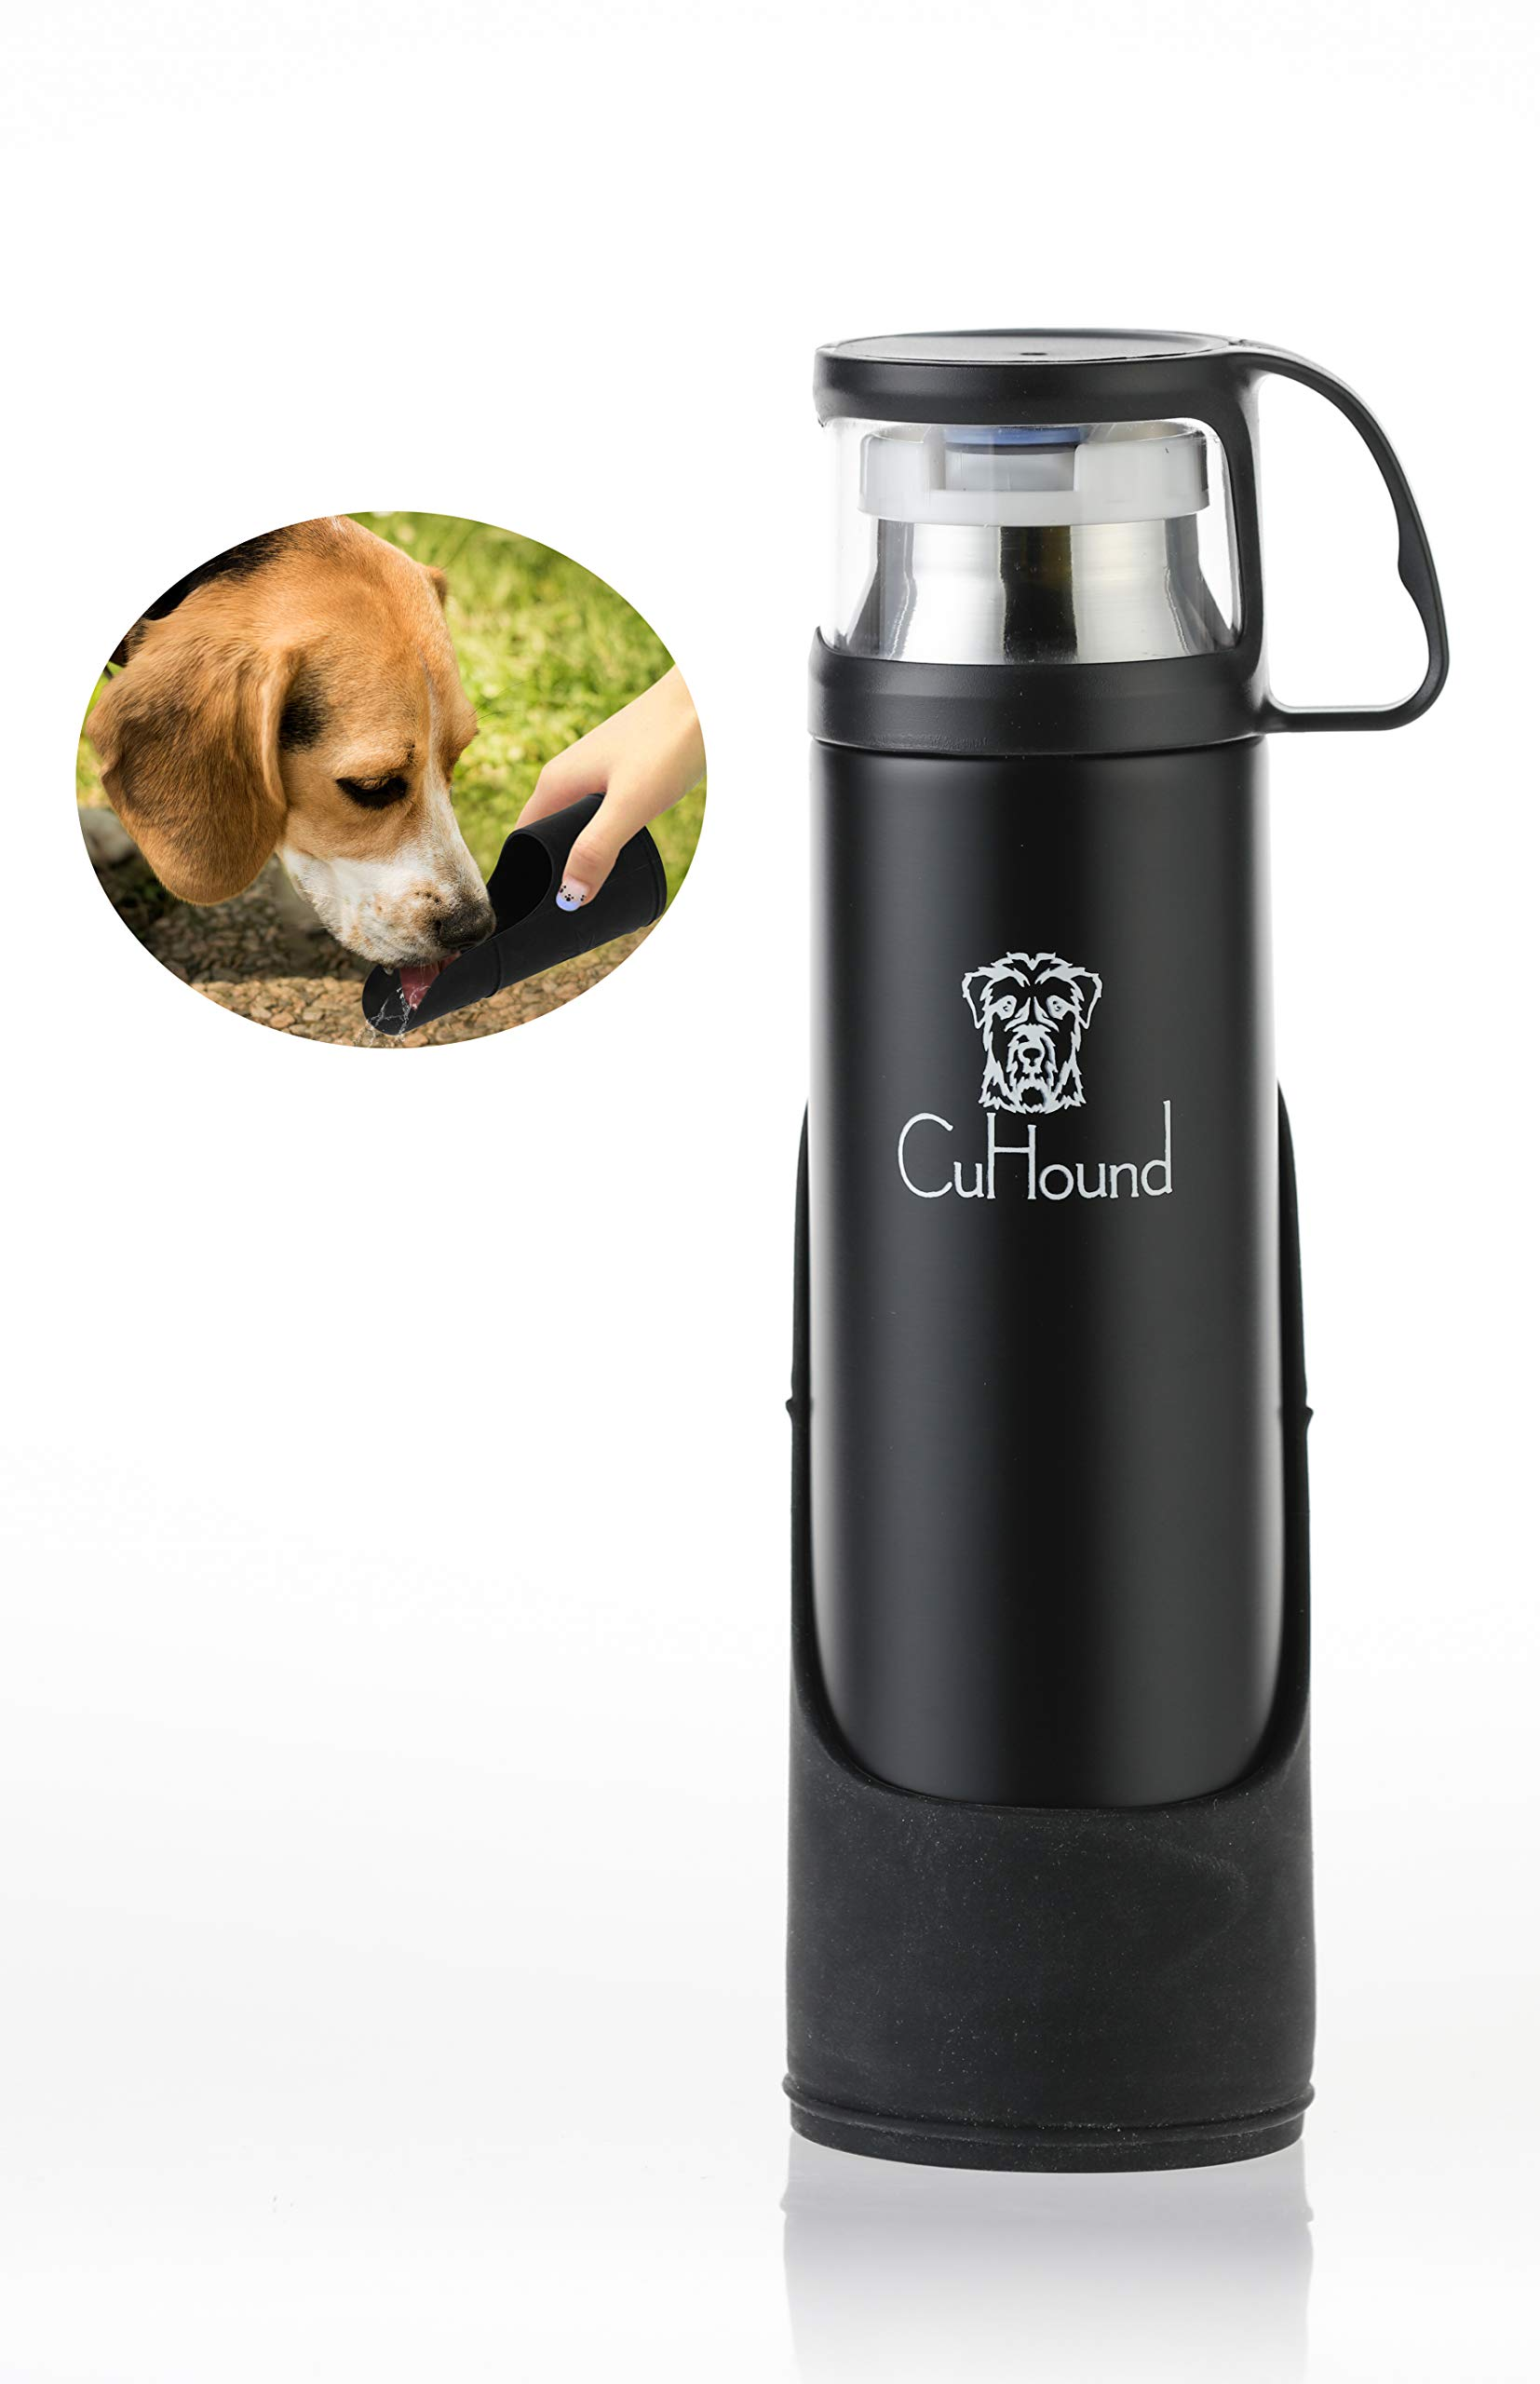 CuHound Portable Vacuum Insulated Dog Water Bottle-Stainless Steel, No Spill dispenser For Large and Small dogs, For Travel, Walking and Harness Drinking, Collapsible cup With Extra cup, Silicon 500ml